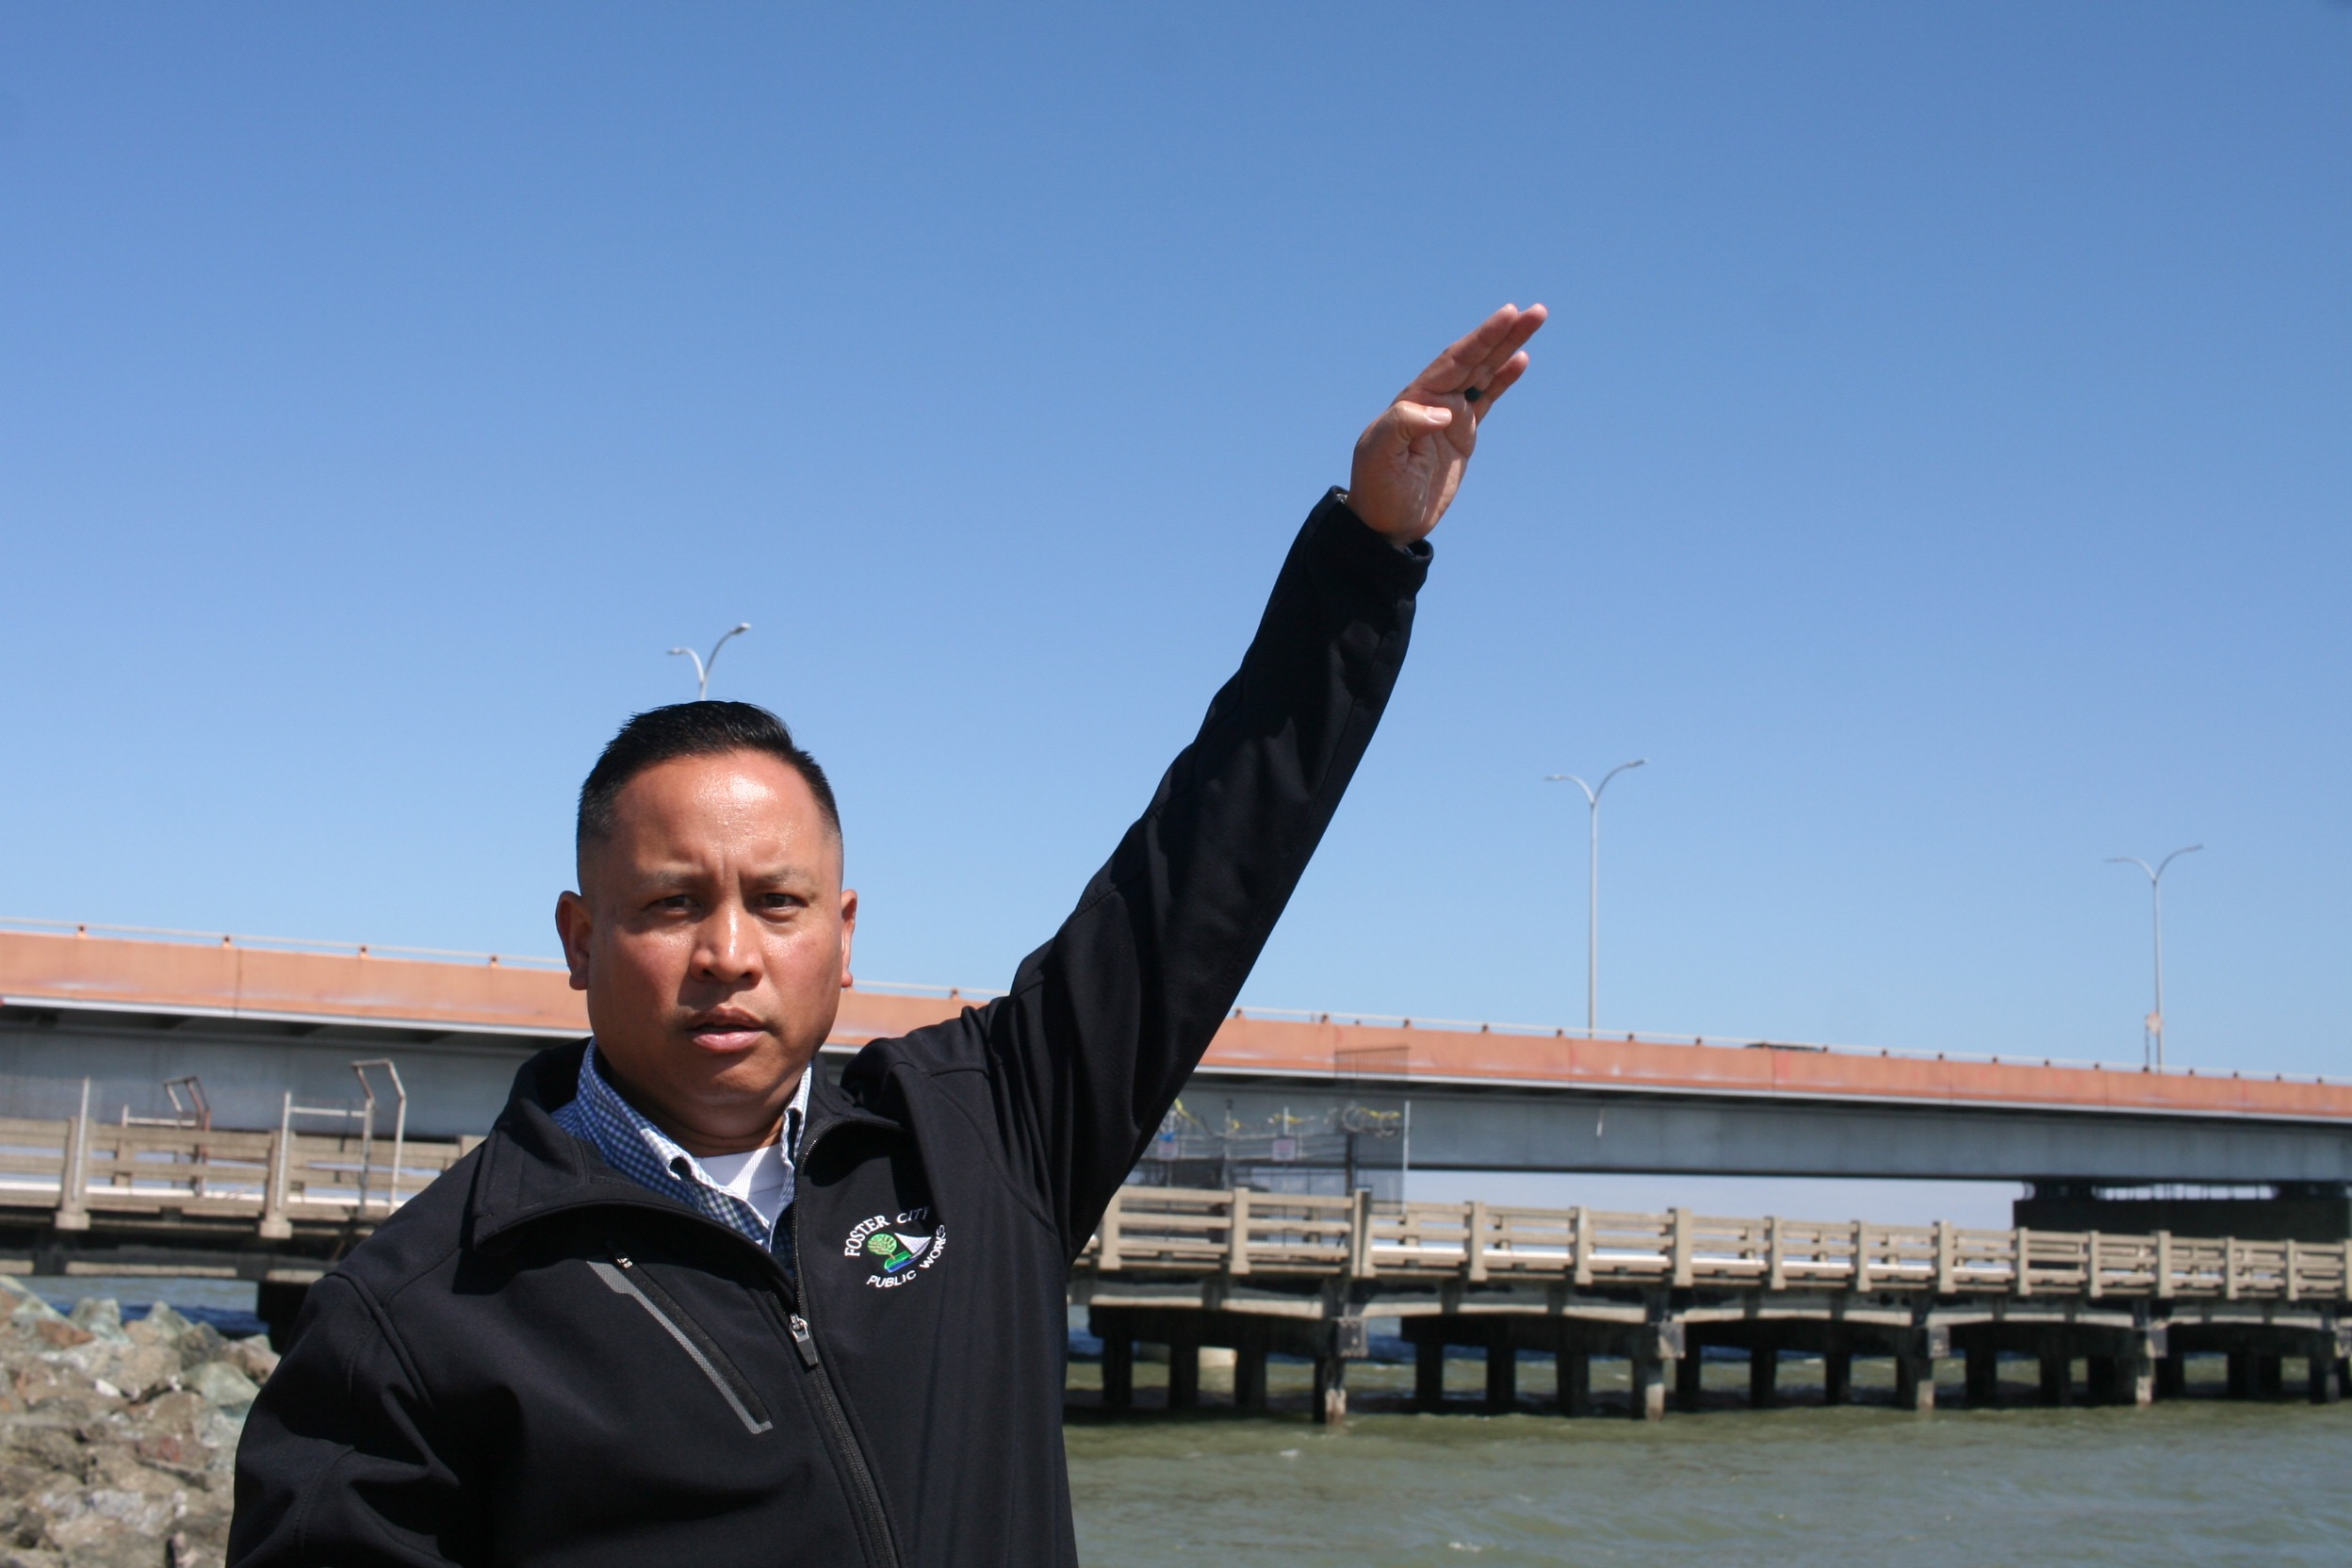 City Manager Jeff Moneda, standing on a levee.